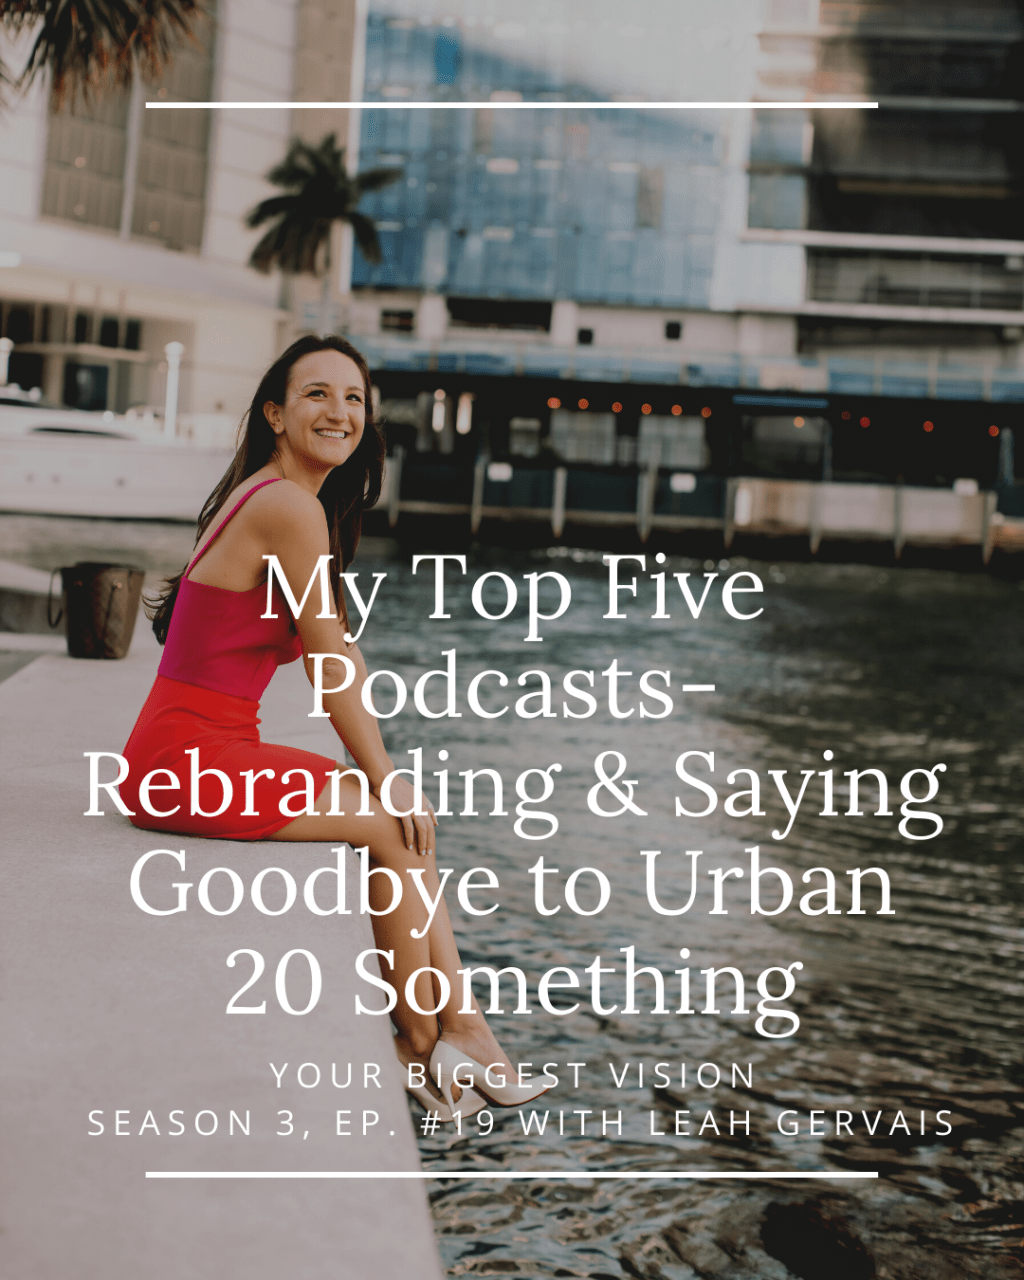 Goodbye Urban 20 Something, hello LeahGervais.com. Learn the true identity and mission of my current business and all about our rebrand!